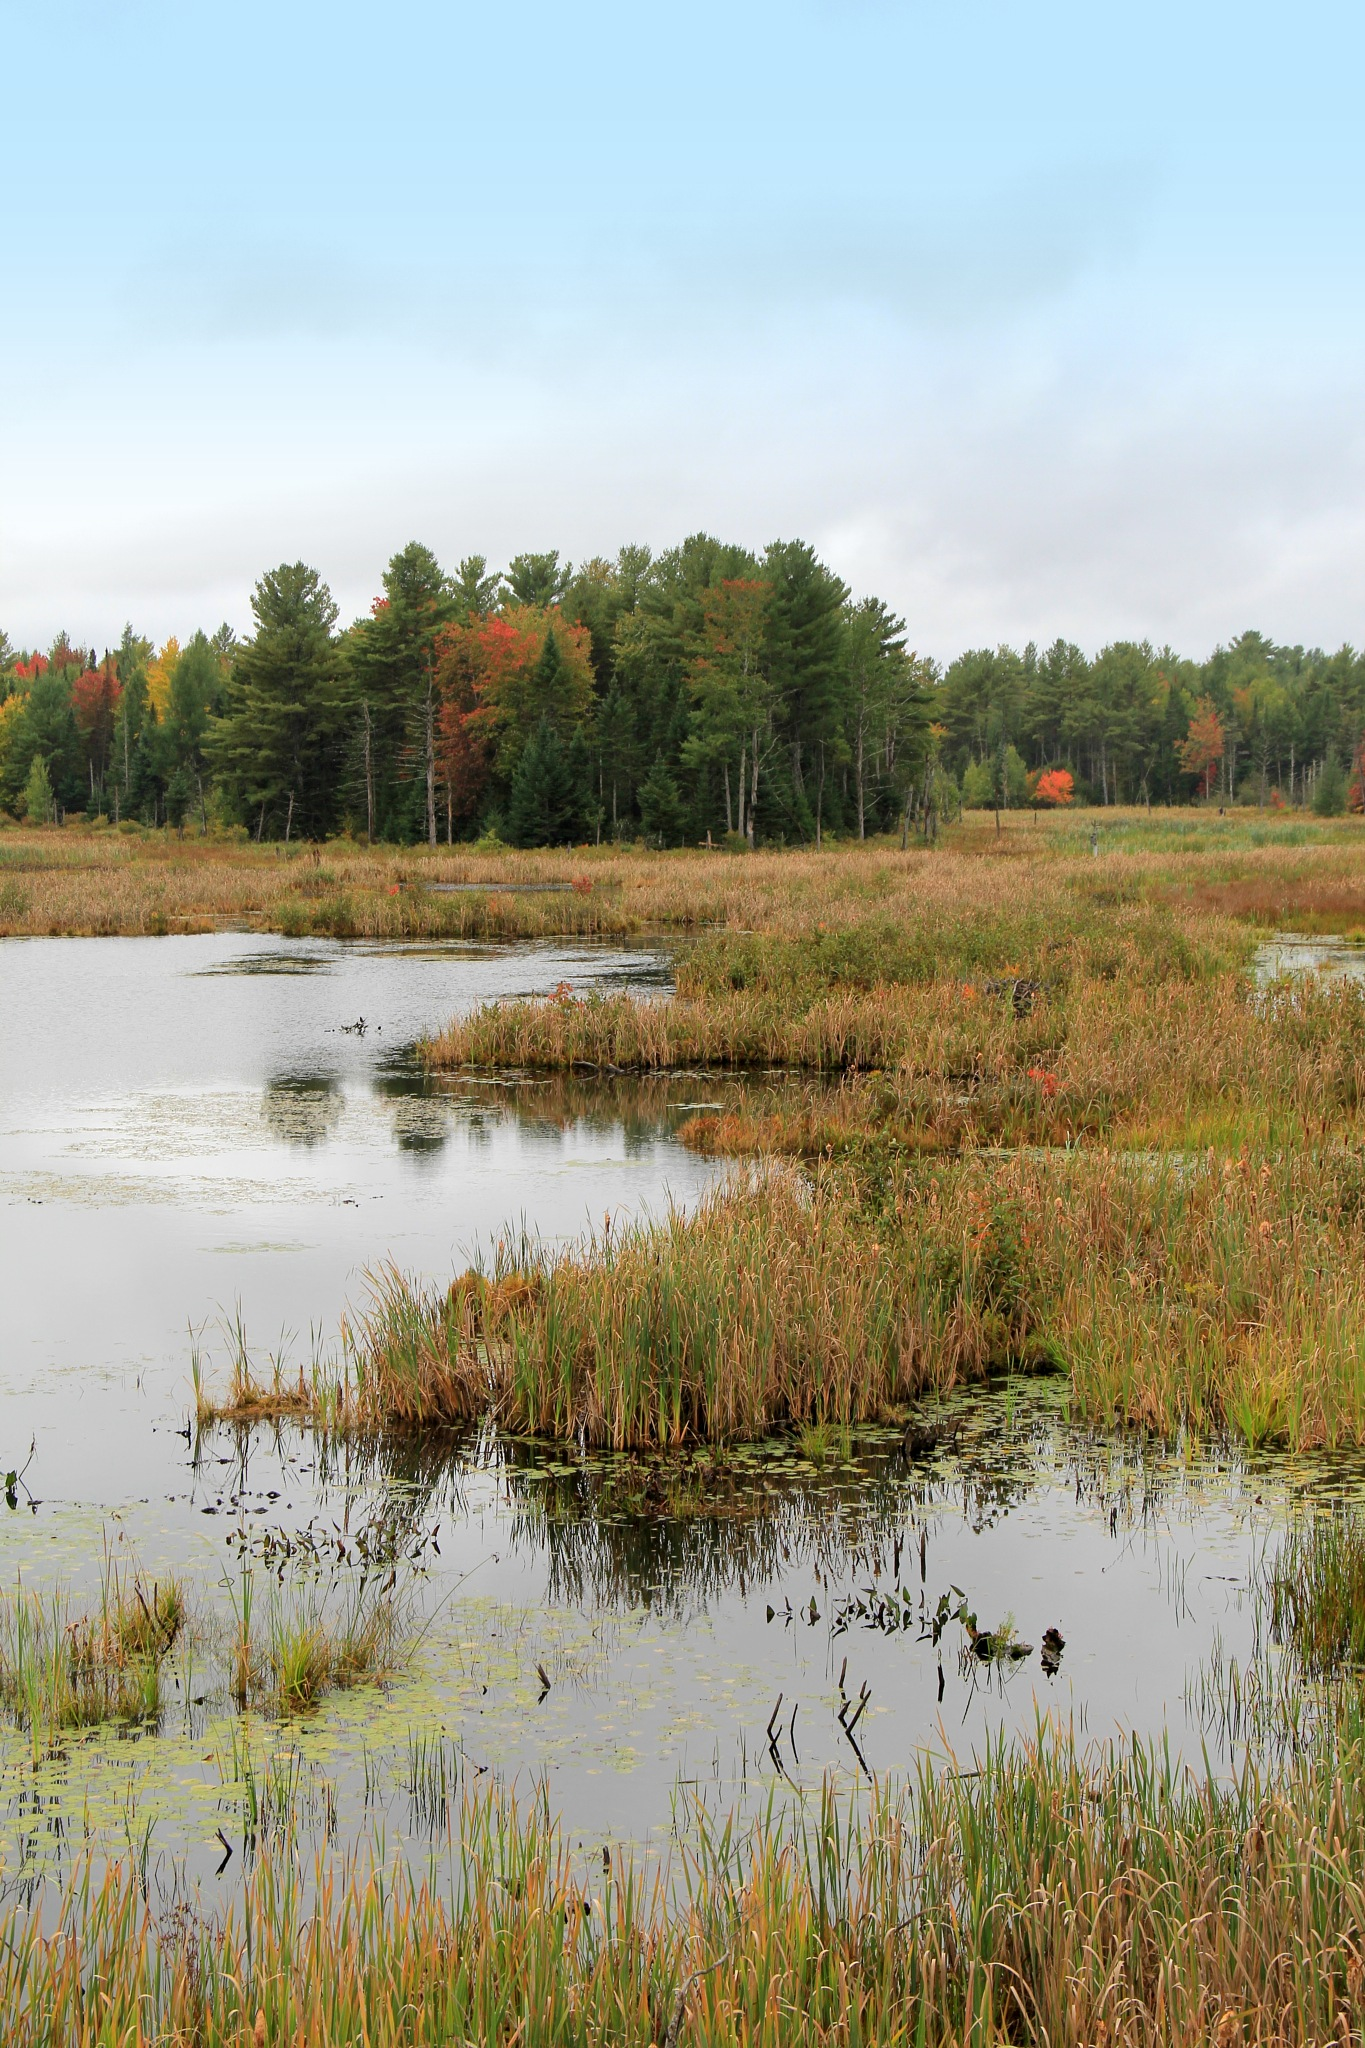 The marsh of Fall by theresaSt.john